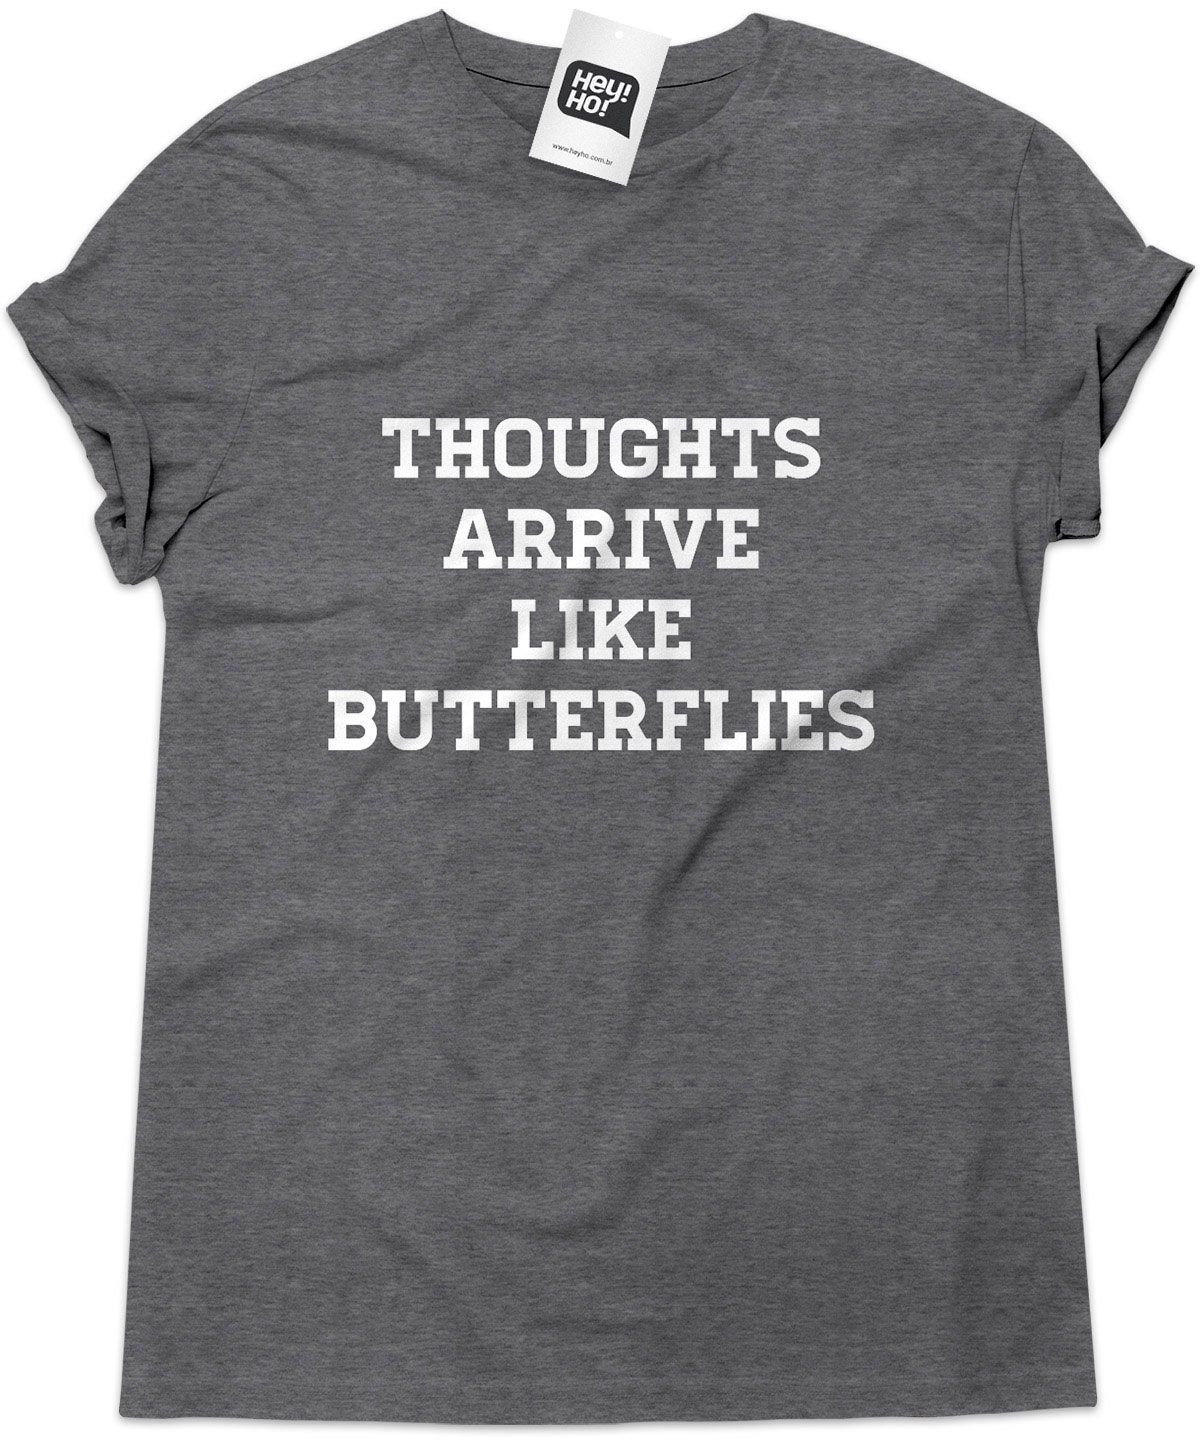 PEARL JAM - Thoughts arrive like butterflies